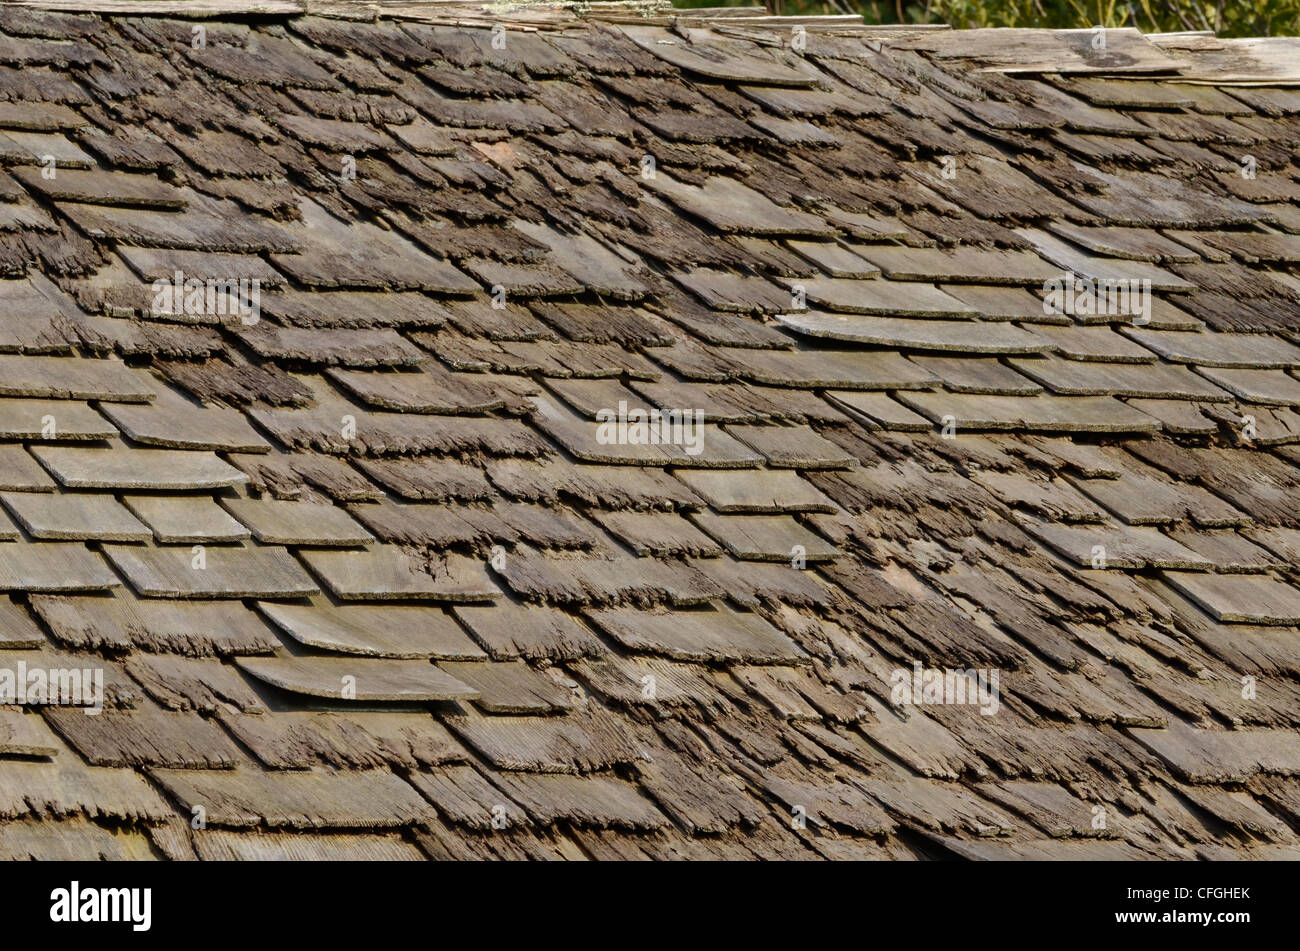 Badly decaying and rotting wooden shingle roof. Damaged wood texture, wooden structure. [FOCUS POINT note in Description.] - Stock Image